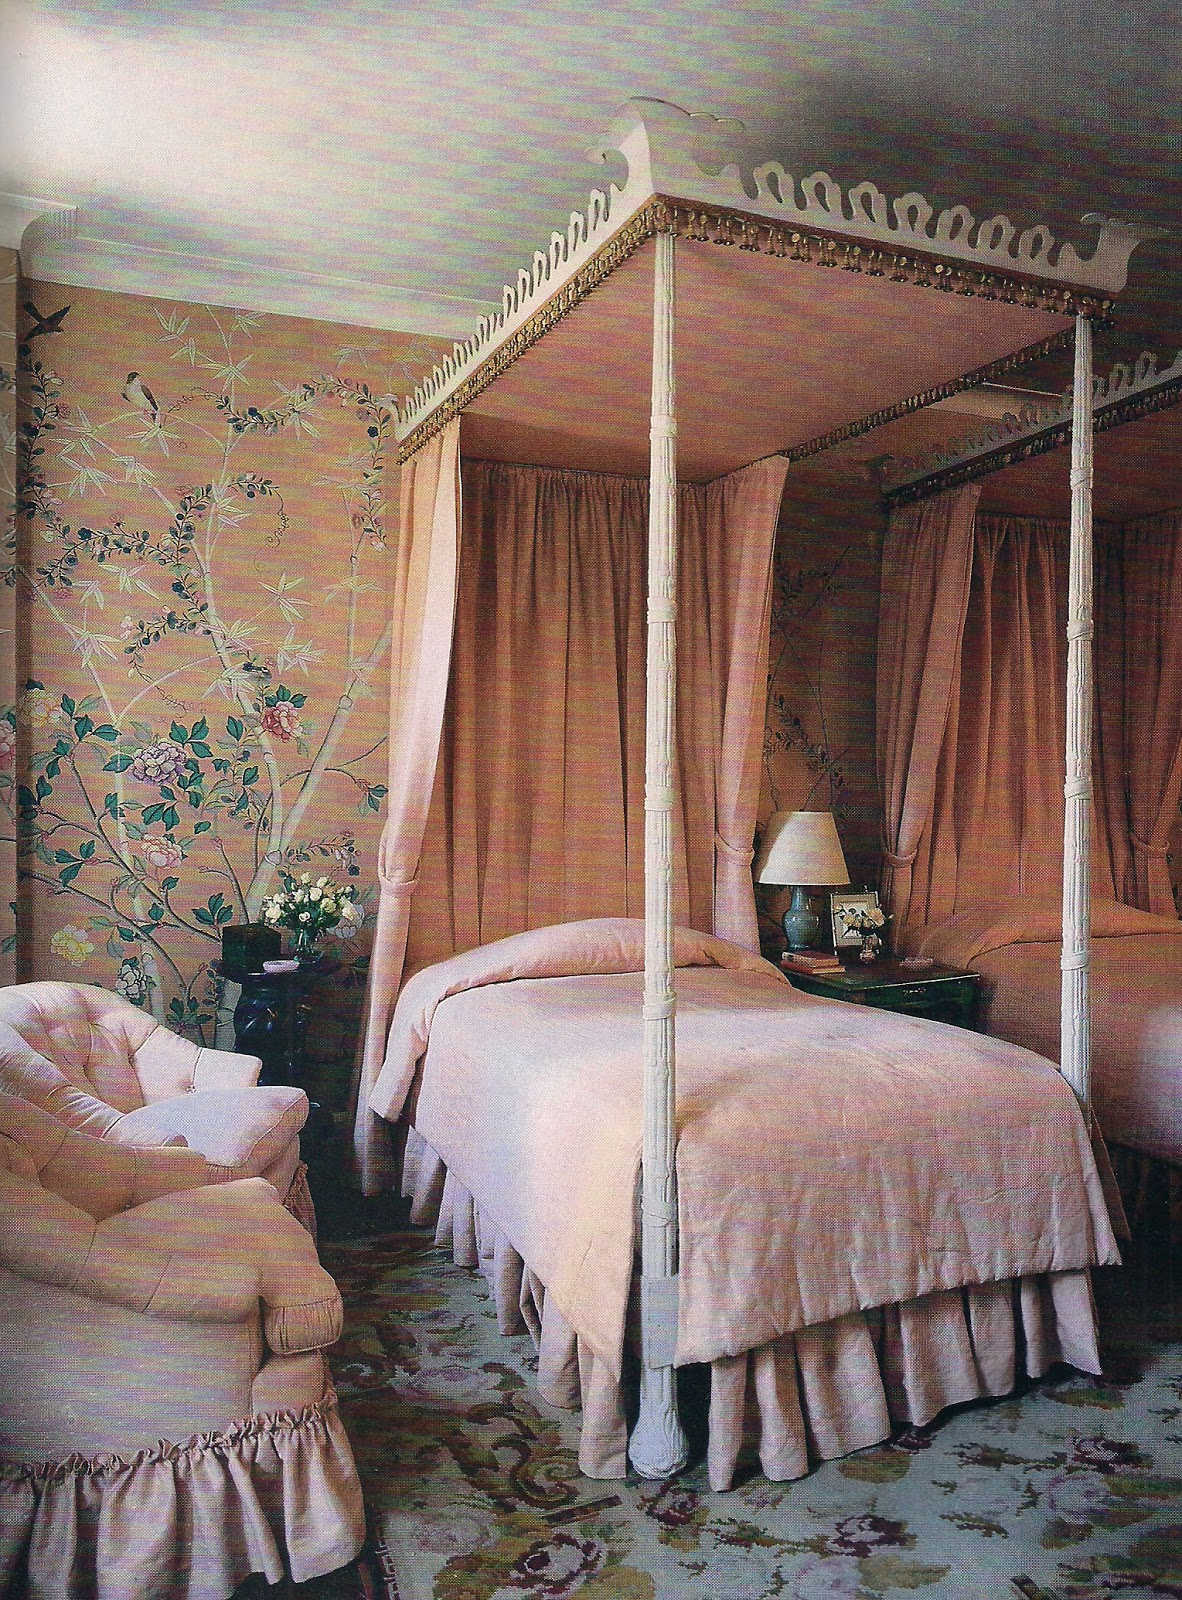 Marks And Spencer Hastings Bedroom Furniture The Devoted Classicist Michael Taylor For Nan Kempner